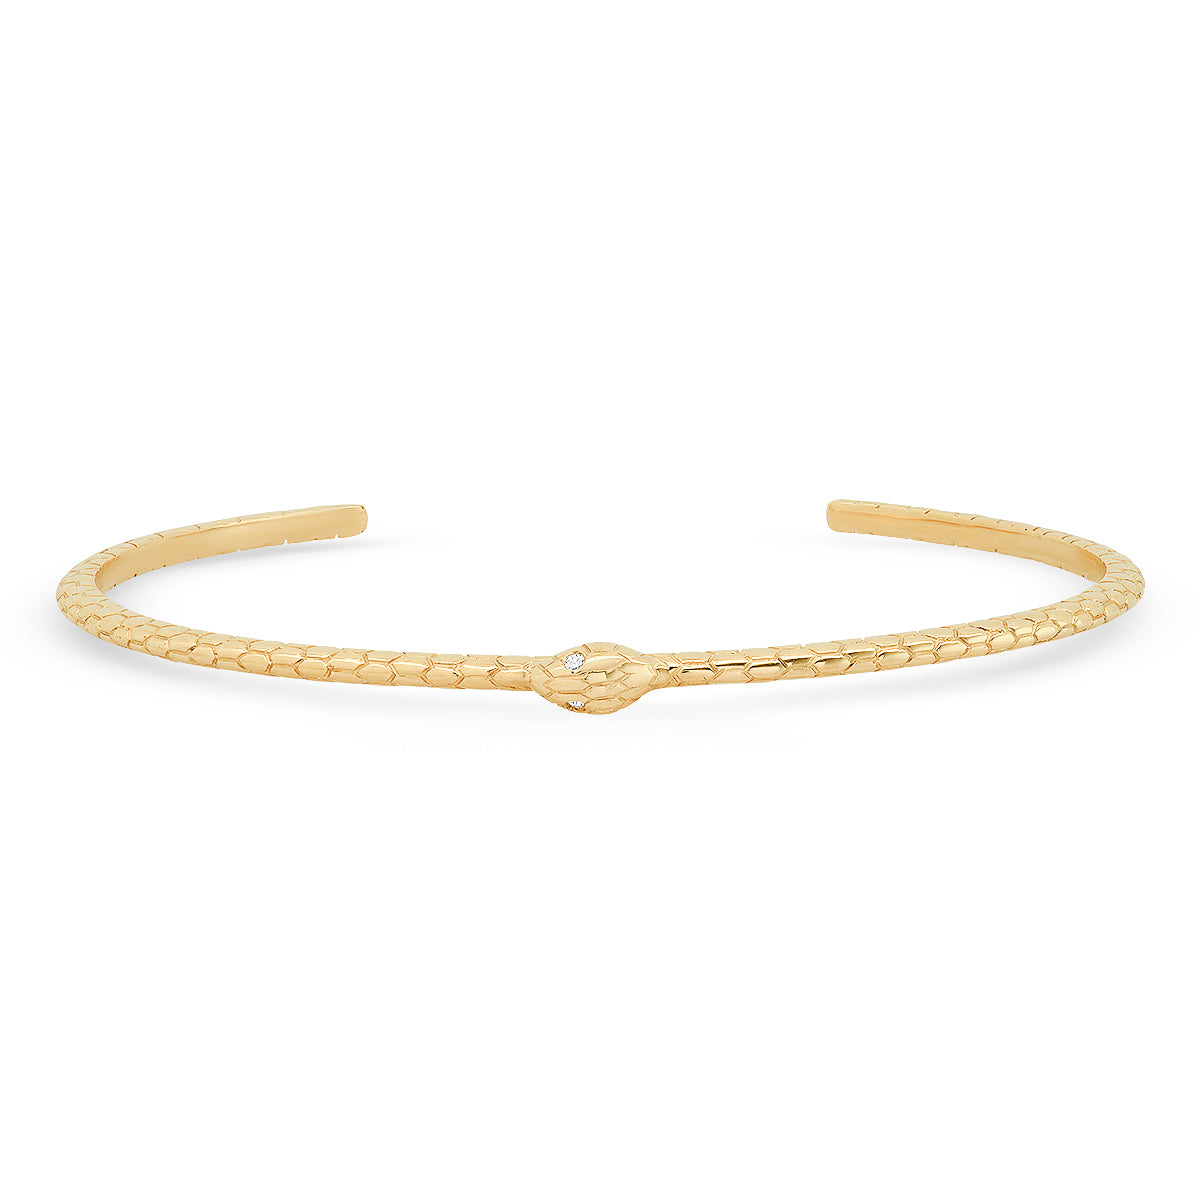 The Ashleigh Bergman Collective x Maya Brenner Diamond Snake Cuff Bracelet